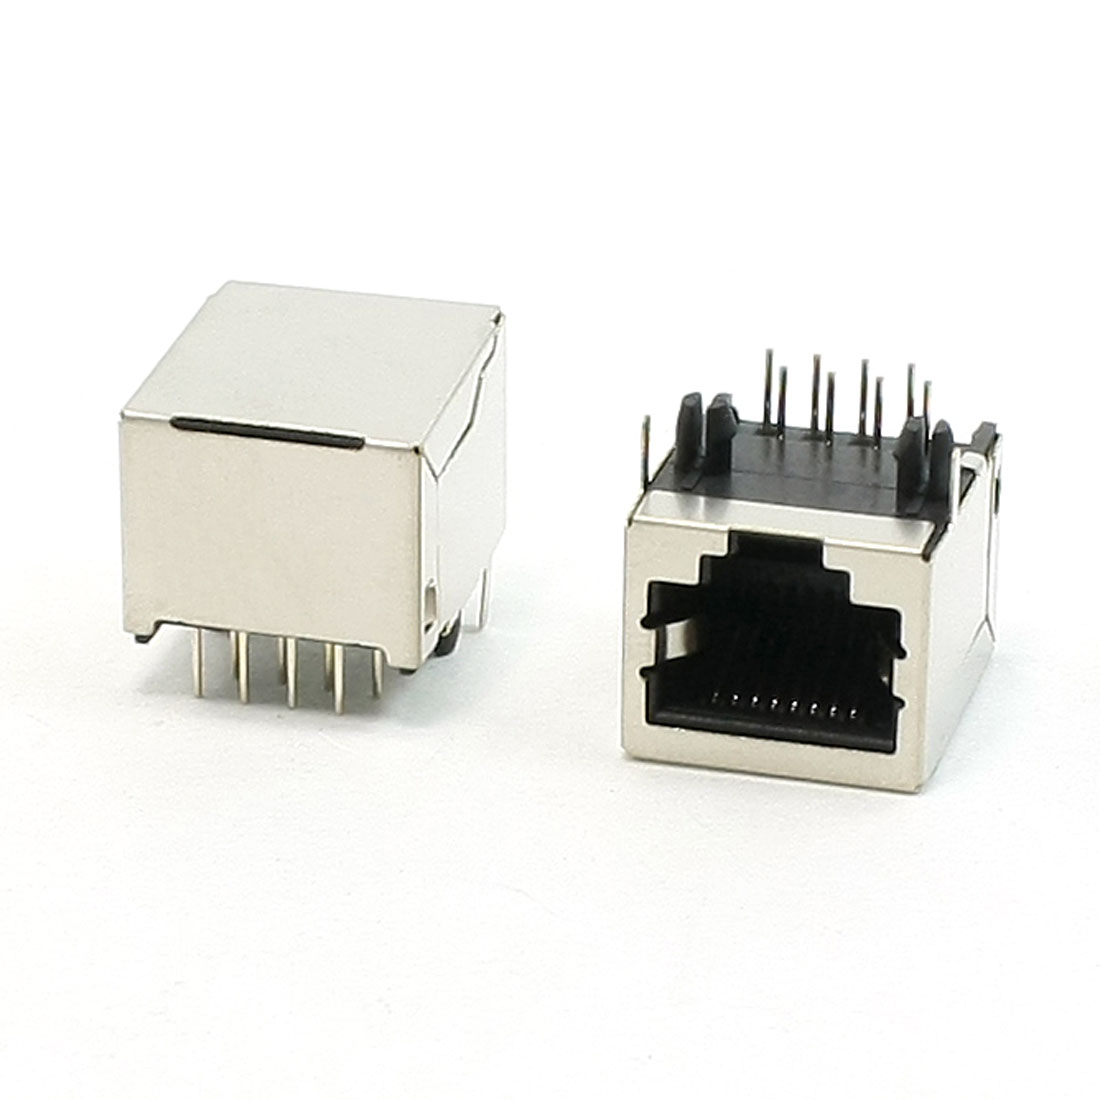 2 Pcs 8Pin RJ45 Network Jack Female Connector 18 x 15.5 x 12mm